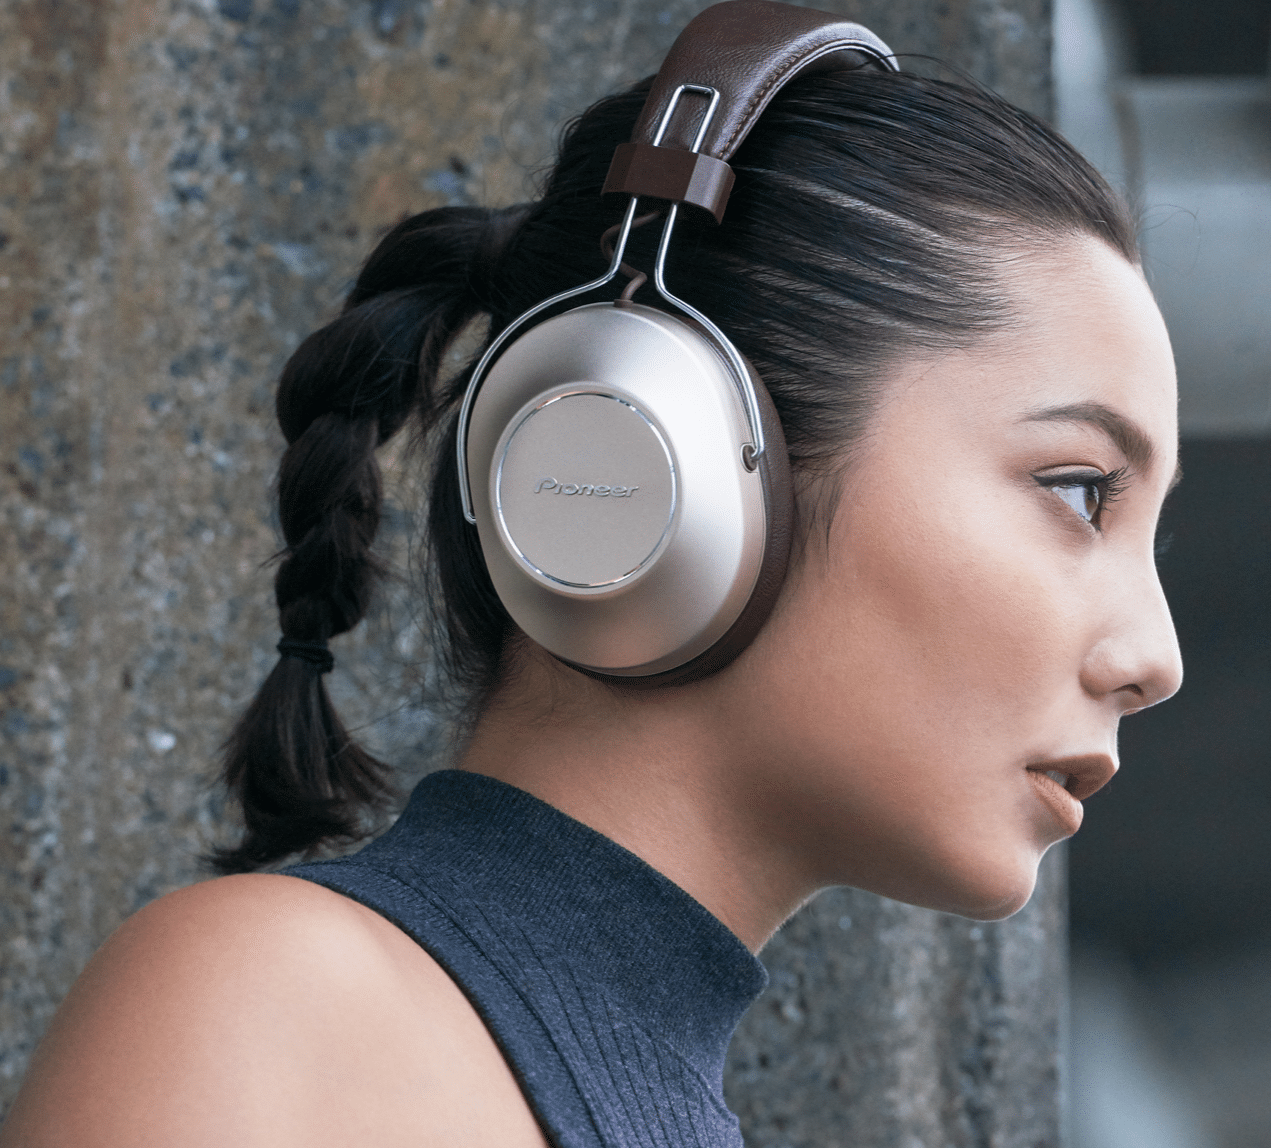 S9 Wireless Noise-Cancelling 'Phones From Pioneer